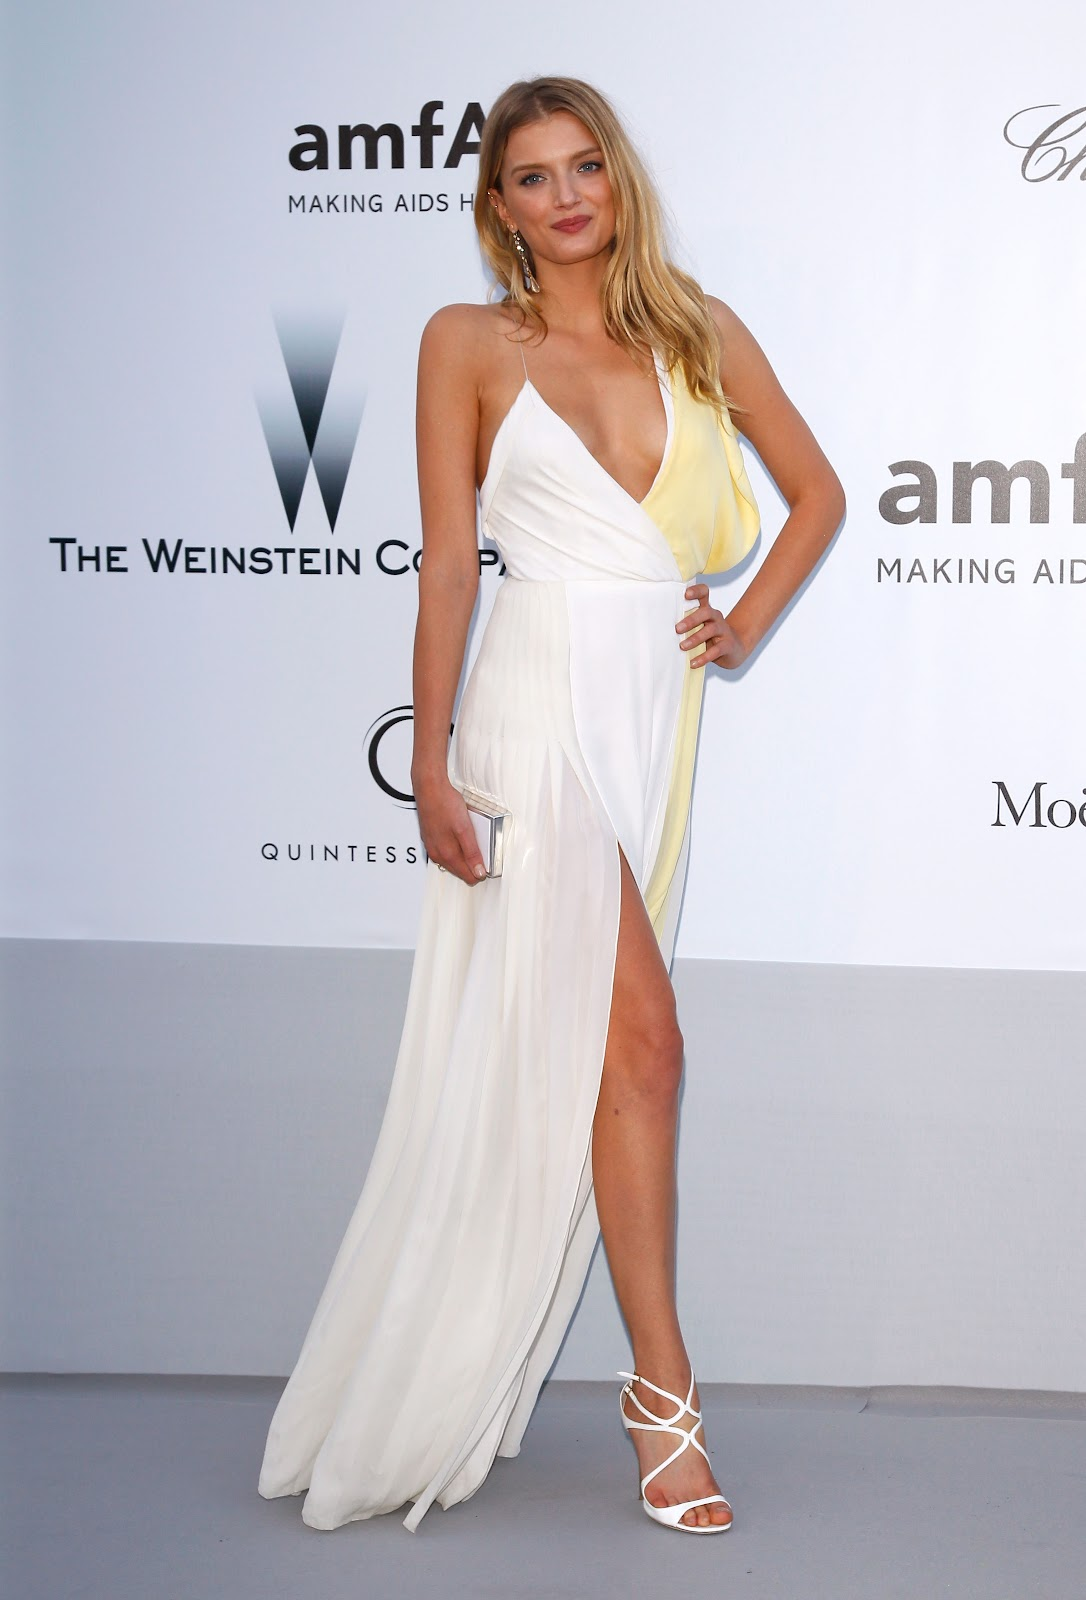 Amfar Gala 2008 in Cannes